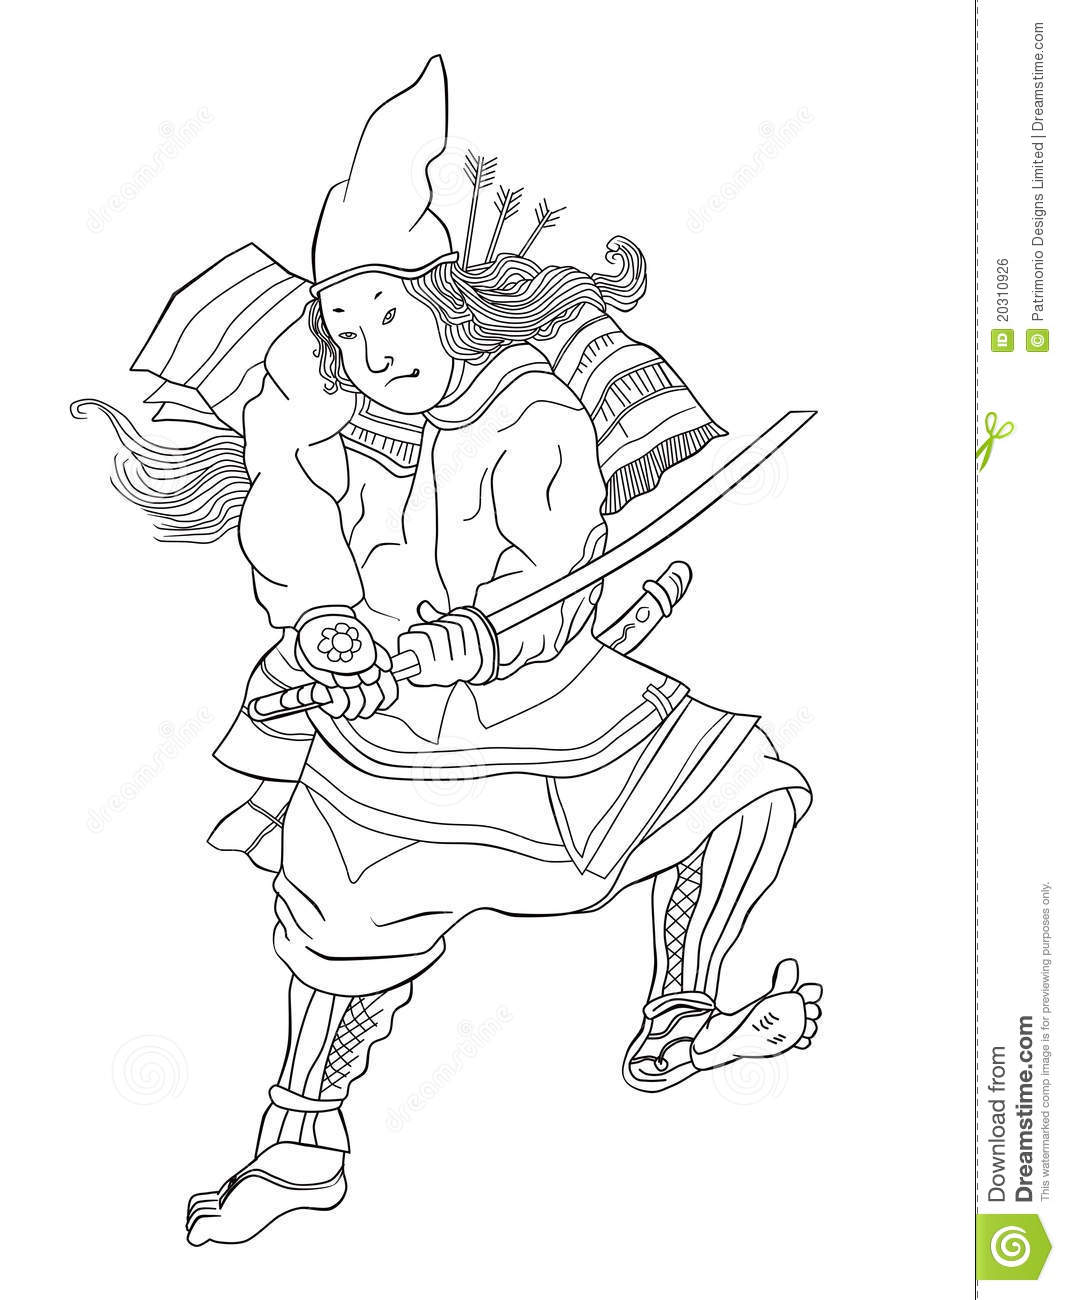 Samurai Warrior With Katana Sword Fighting Stance Royalty